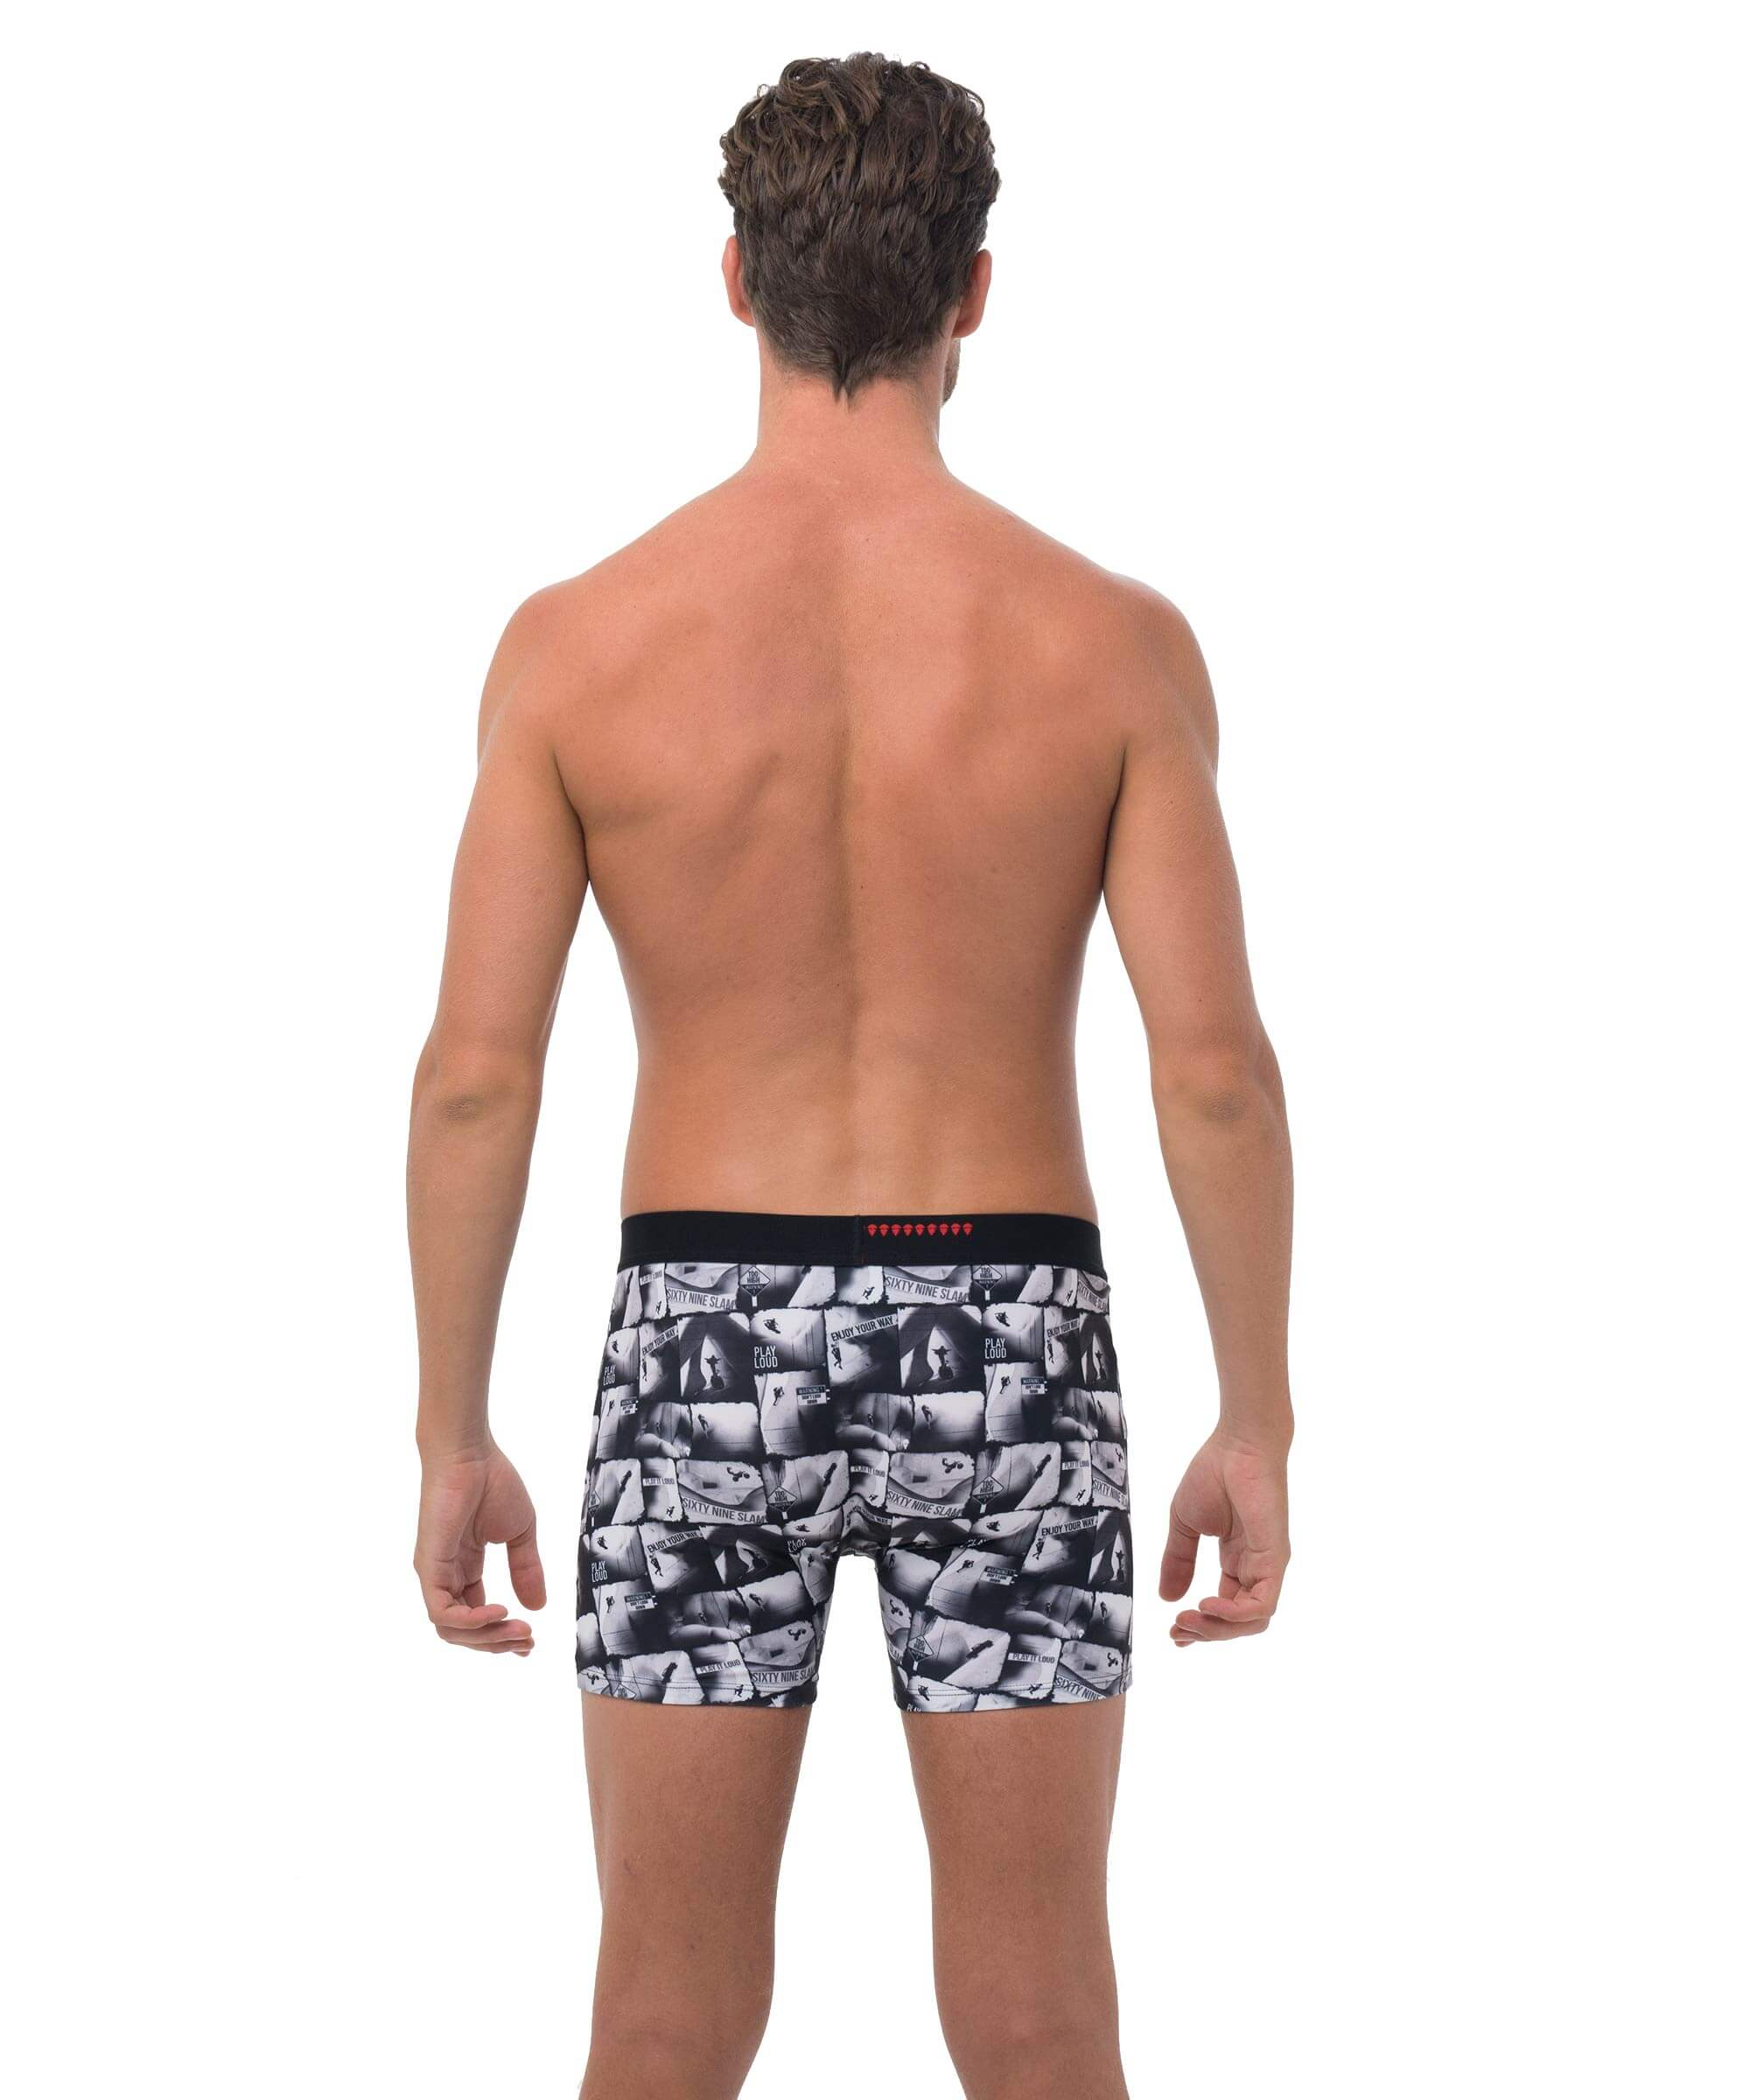 EXTREME SPORT LIMITED EDITION FITTED FIT BOXER